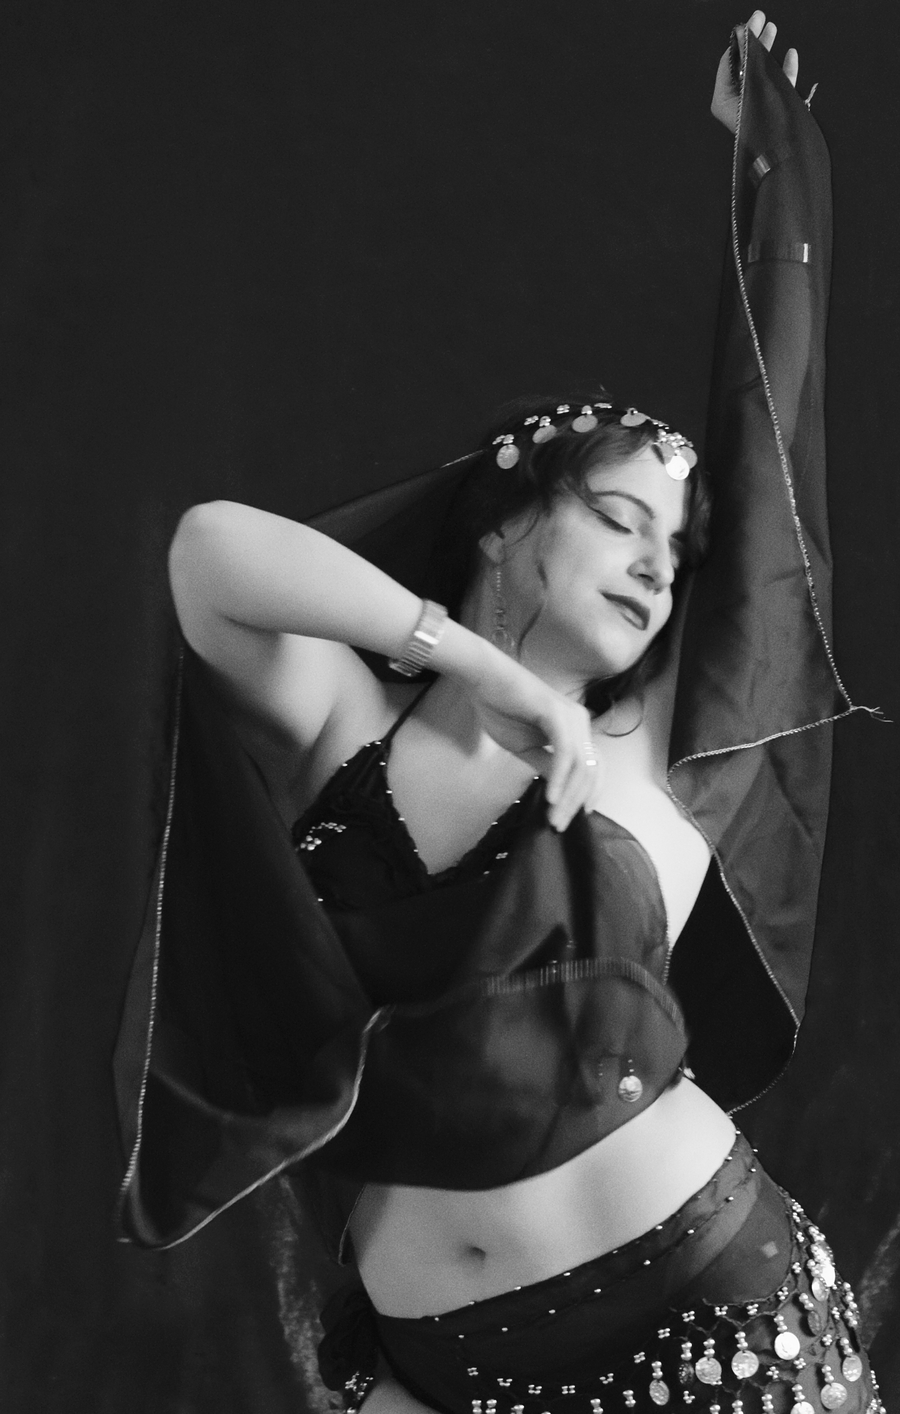 Zara queen of the silver screen in a silent movie / Photography by MichaelG5, Model Zara Liore / Uploaded 10th July 2018 @ 09:34 PM